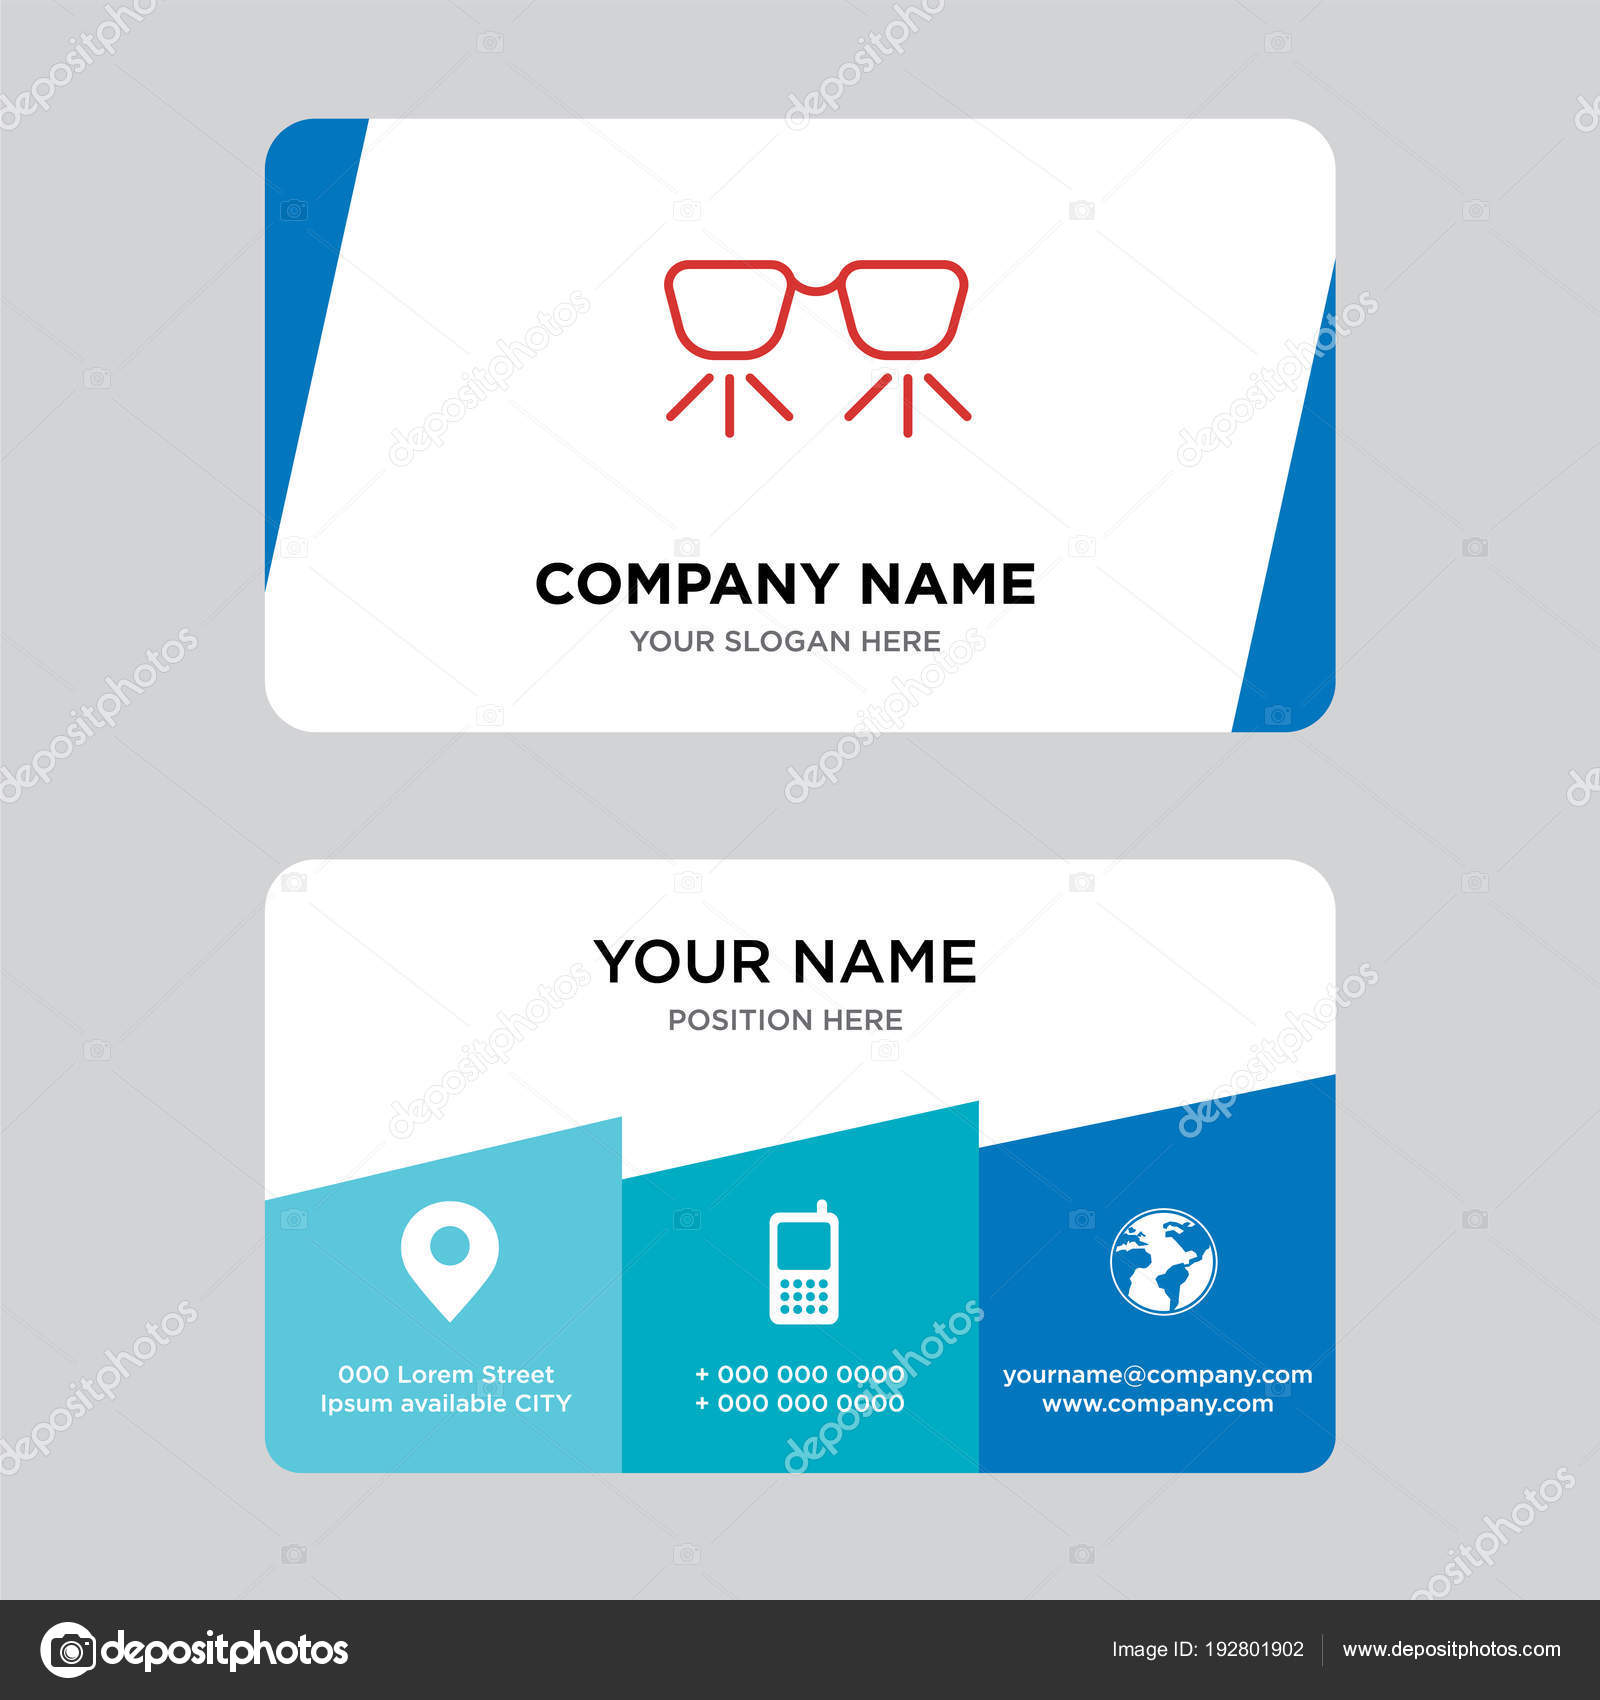 Ar glasses business card design template — Stock Vector ...